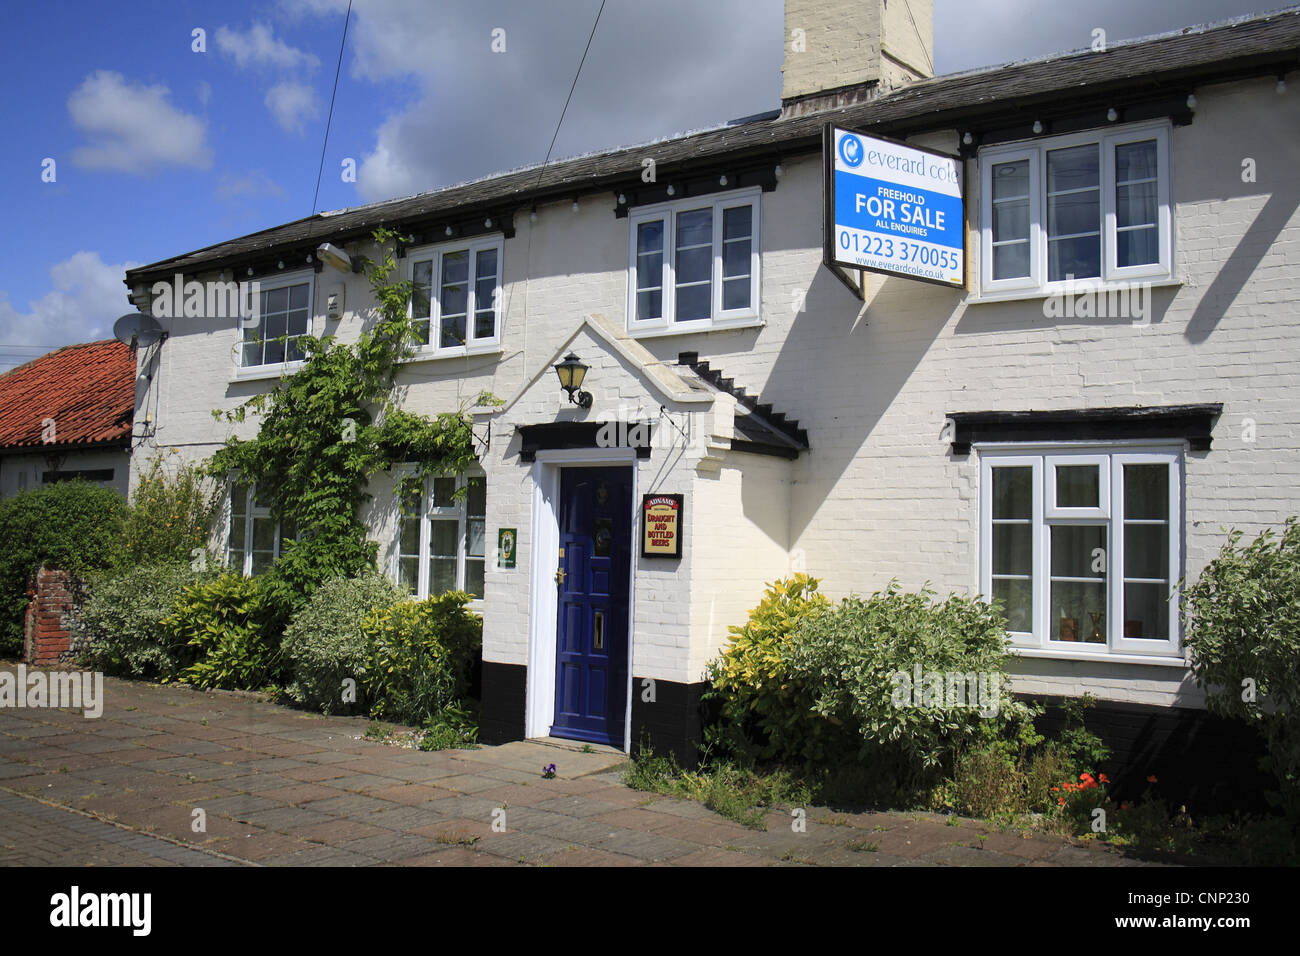 Public house for sale, The White Horse, Thelnetham, Suffolk, England, may Stock Photo